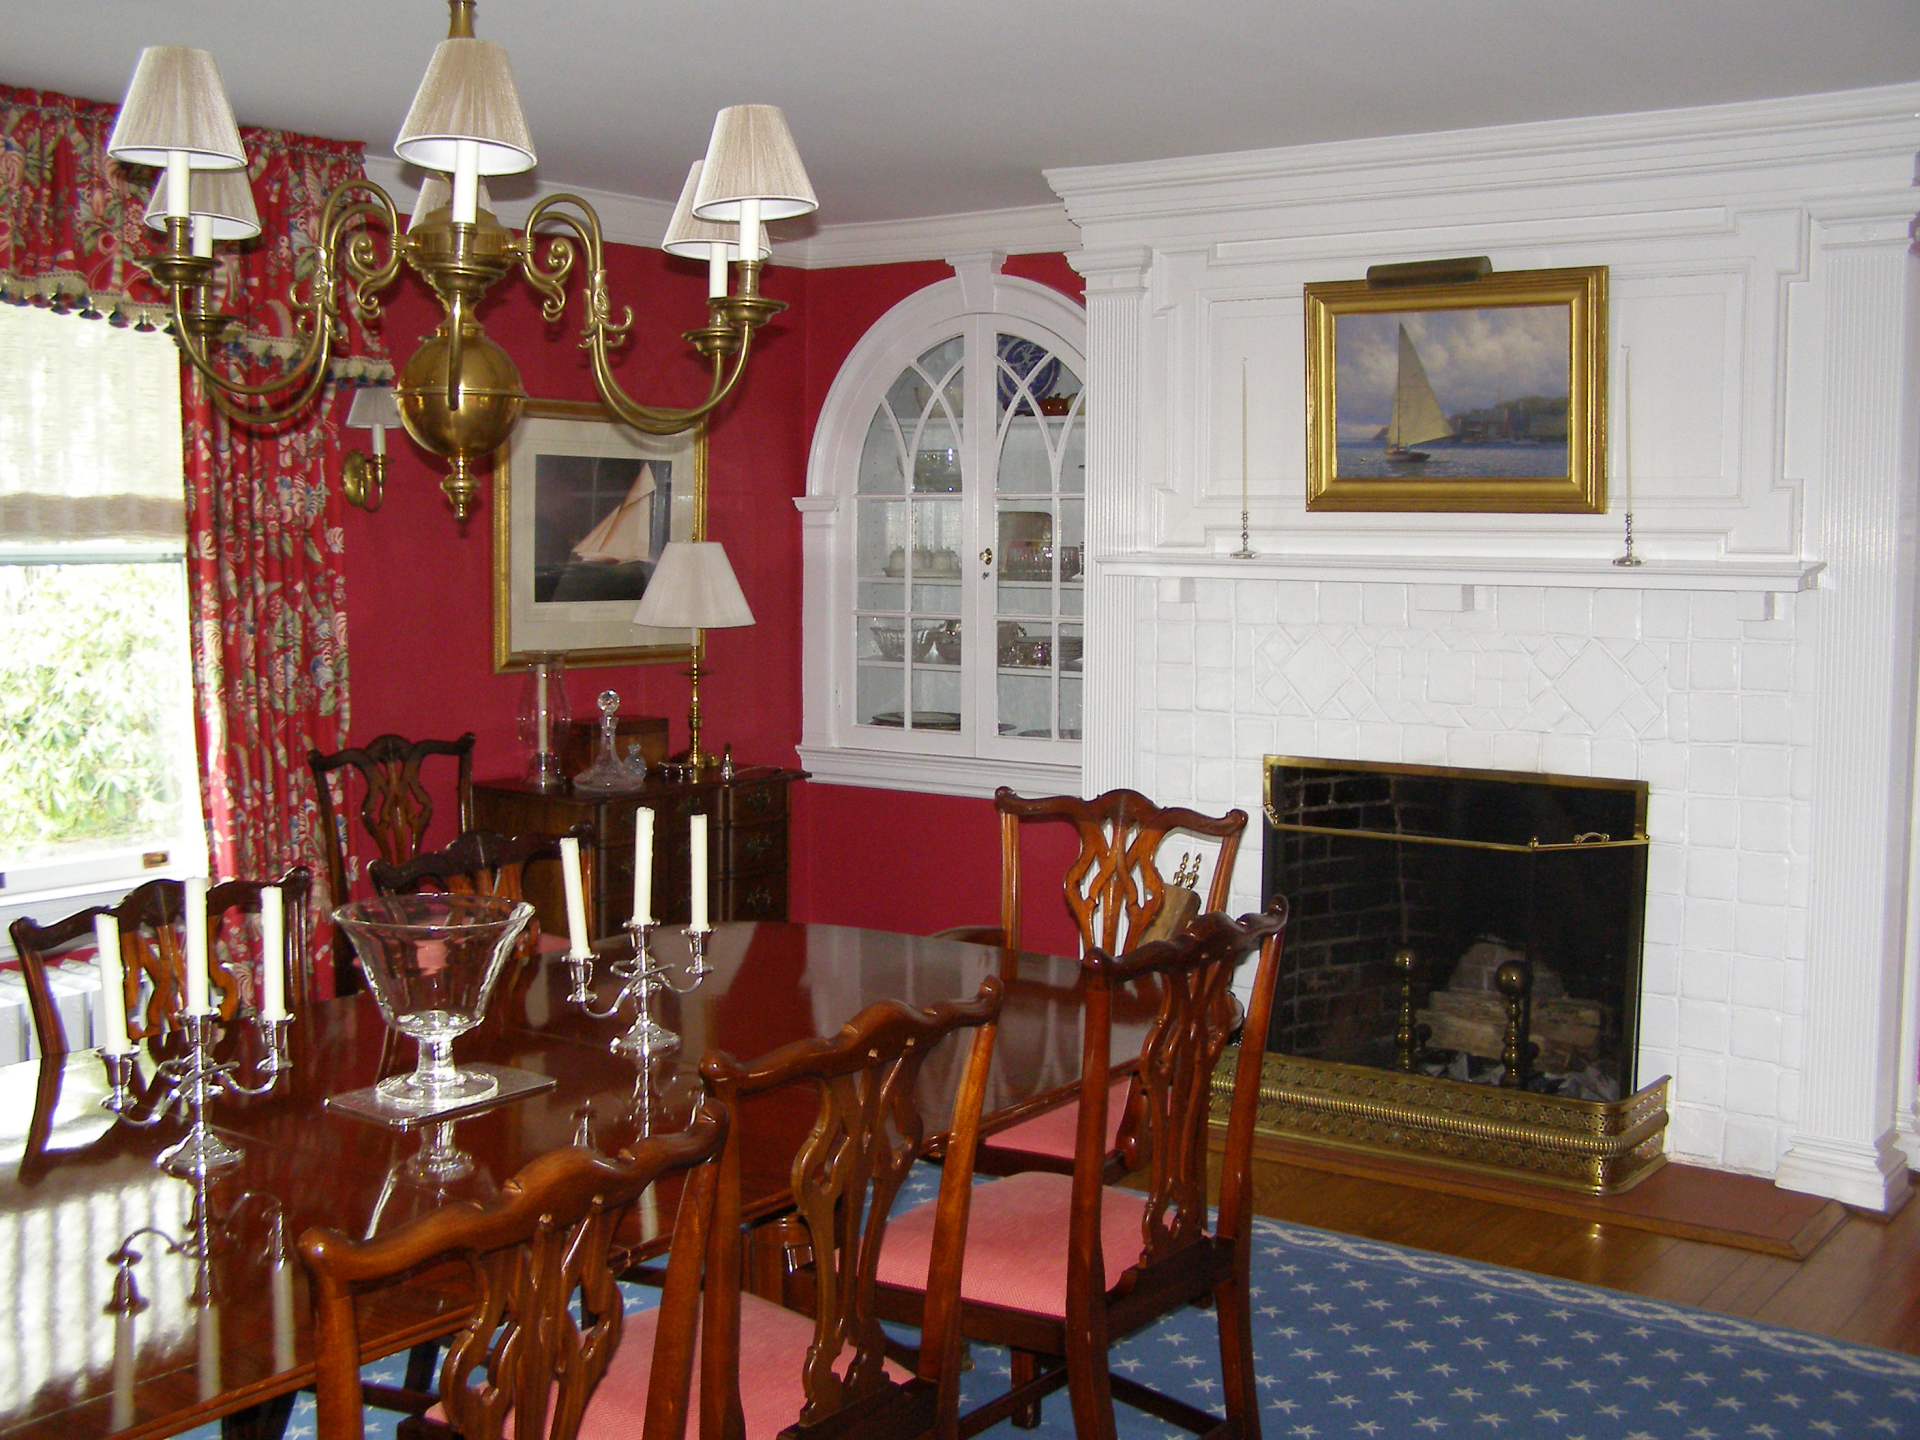 Kitchens and Dining Area